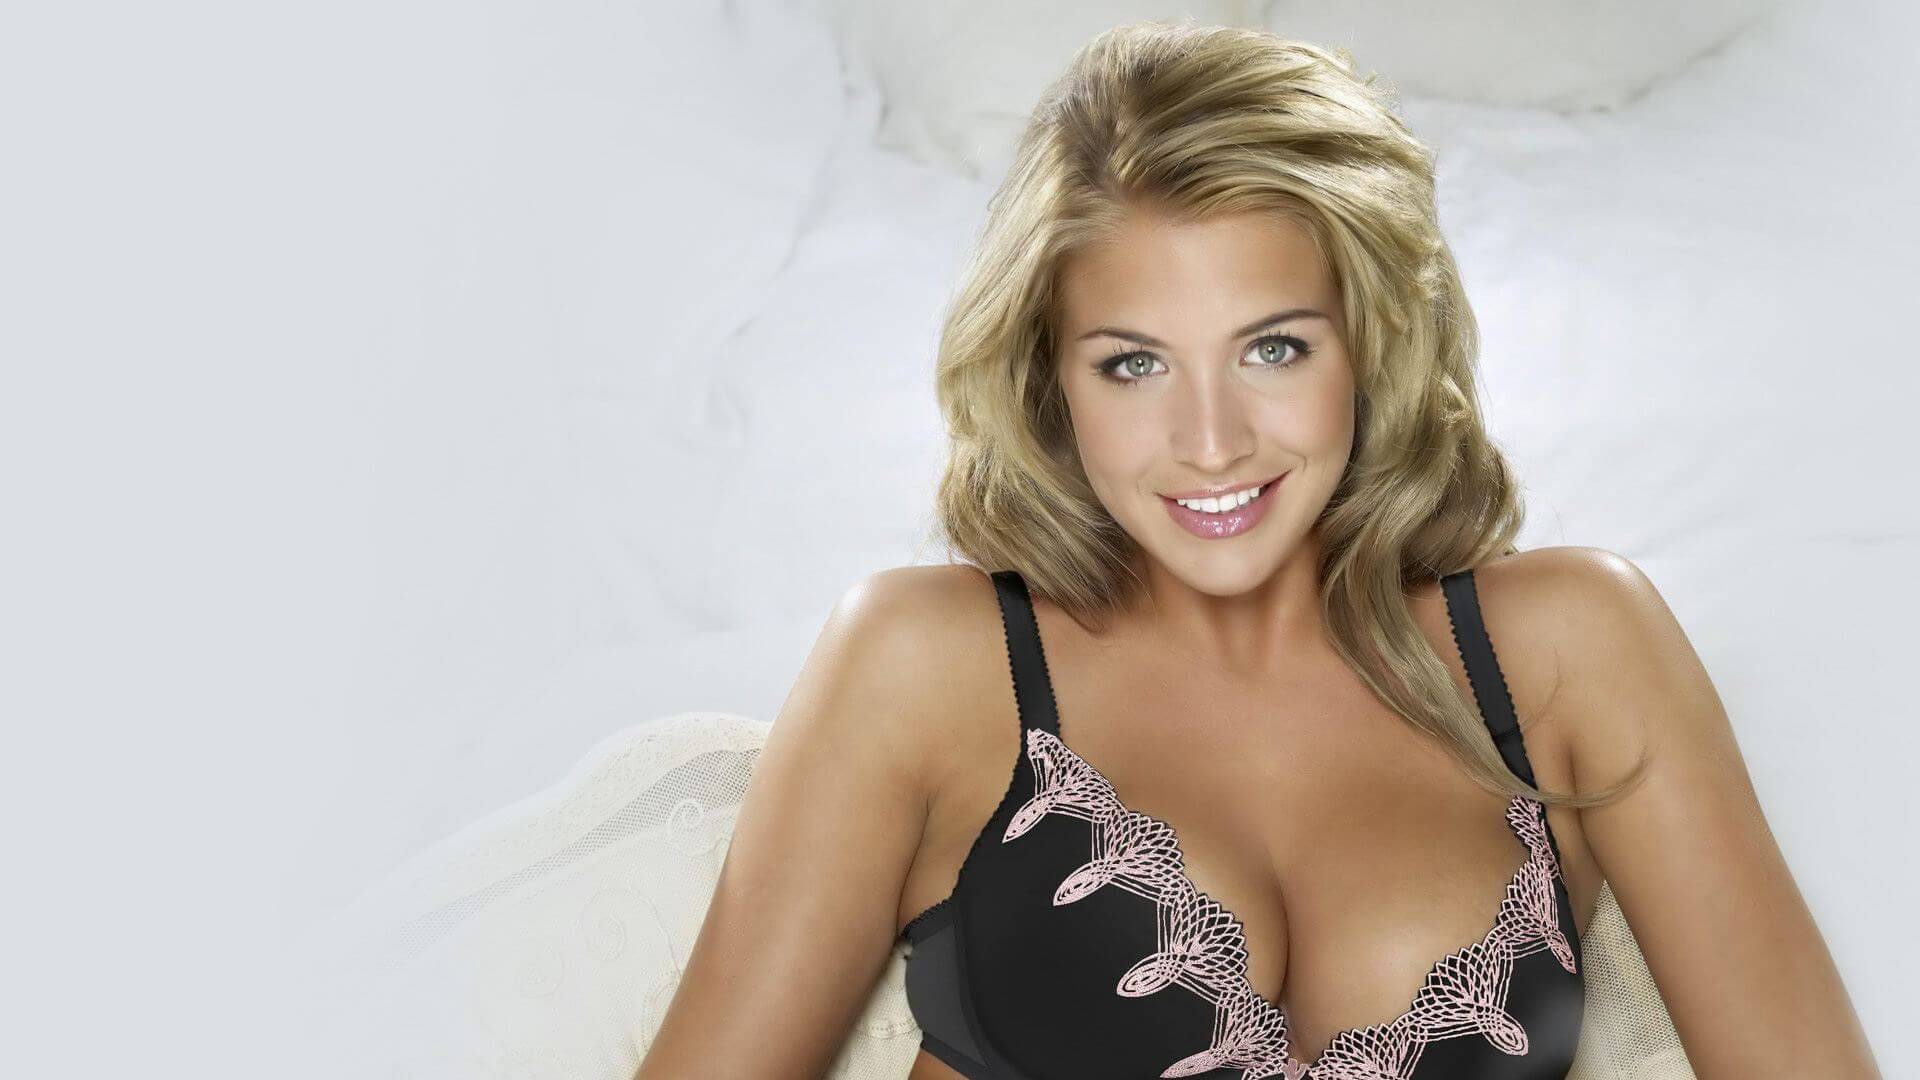 Gemma Atkinson Biography, Age, Weight, Height, Friend, Like, Affairs, Favourite, Birthdate & Other